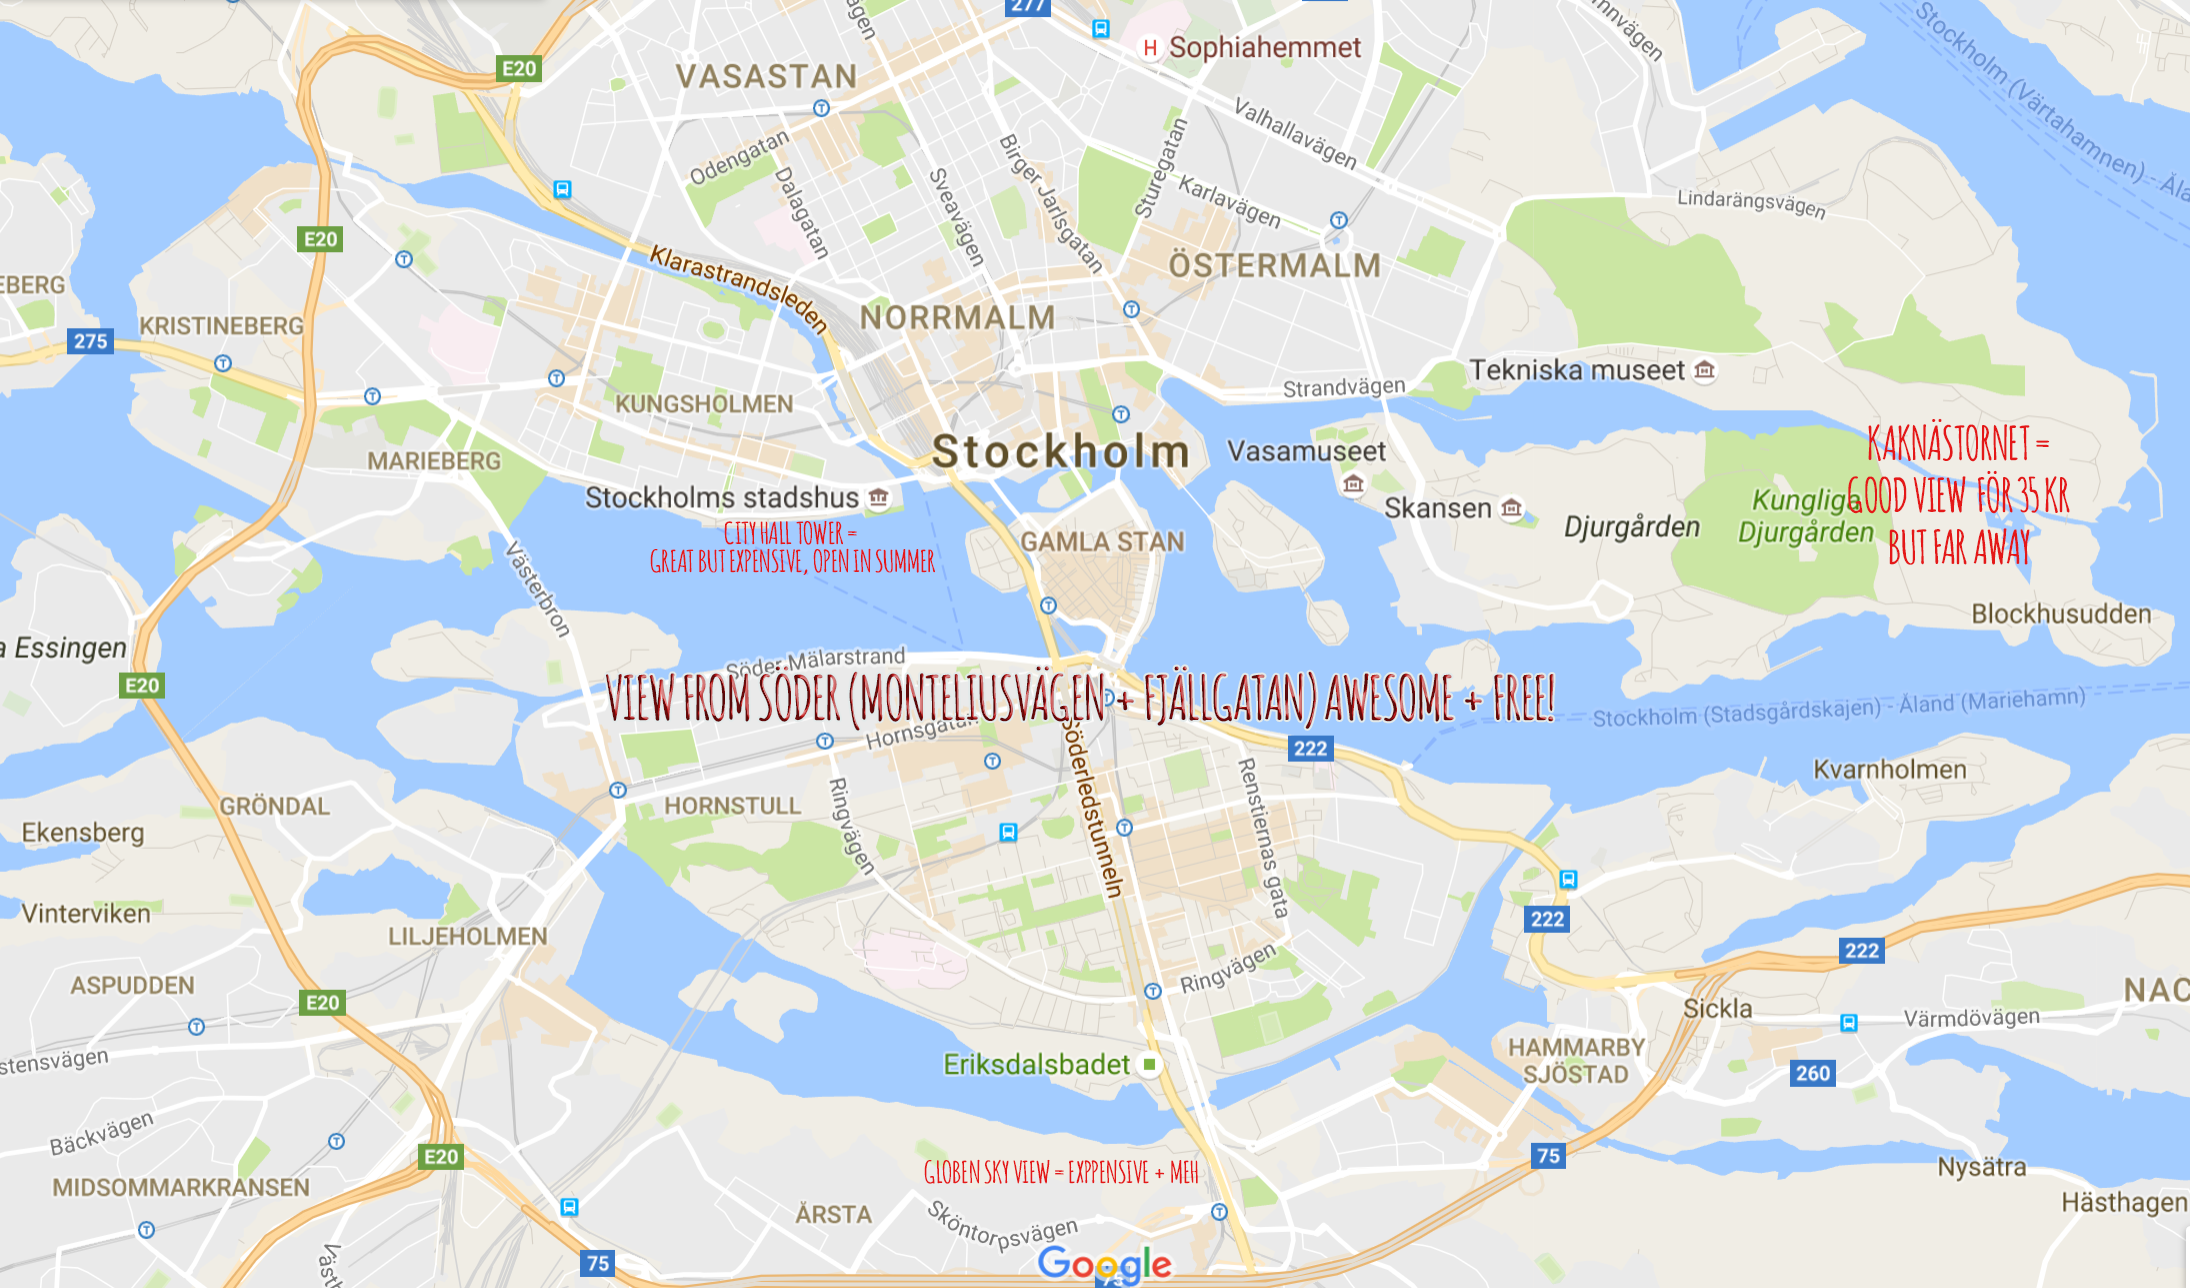 free sex svenska billig massage